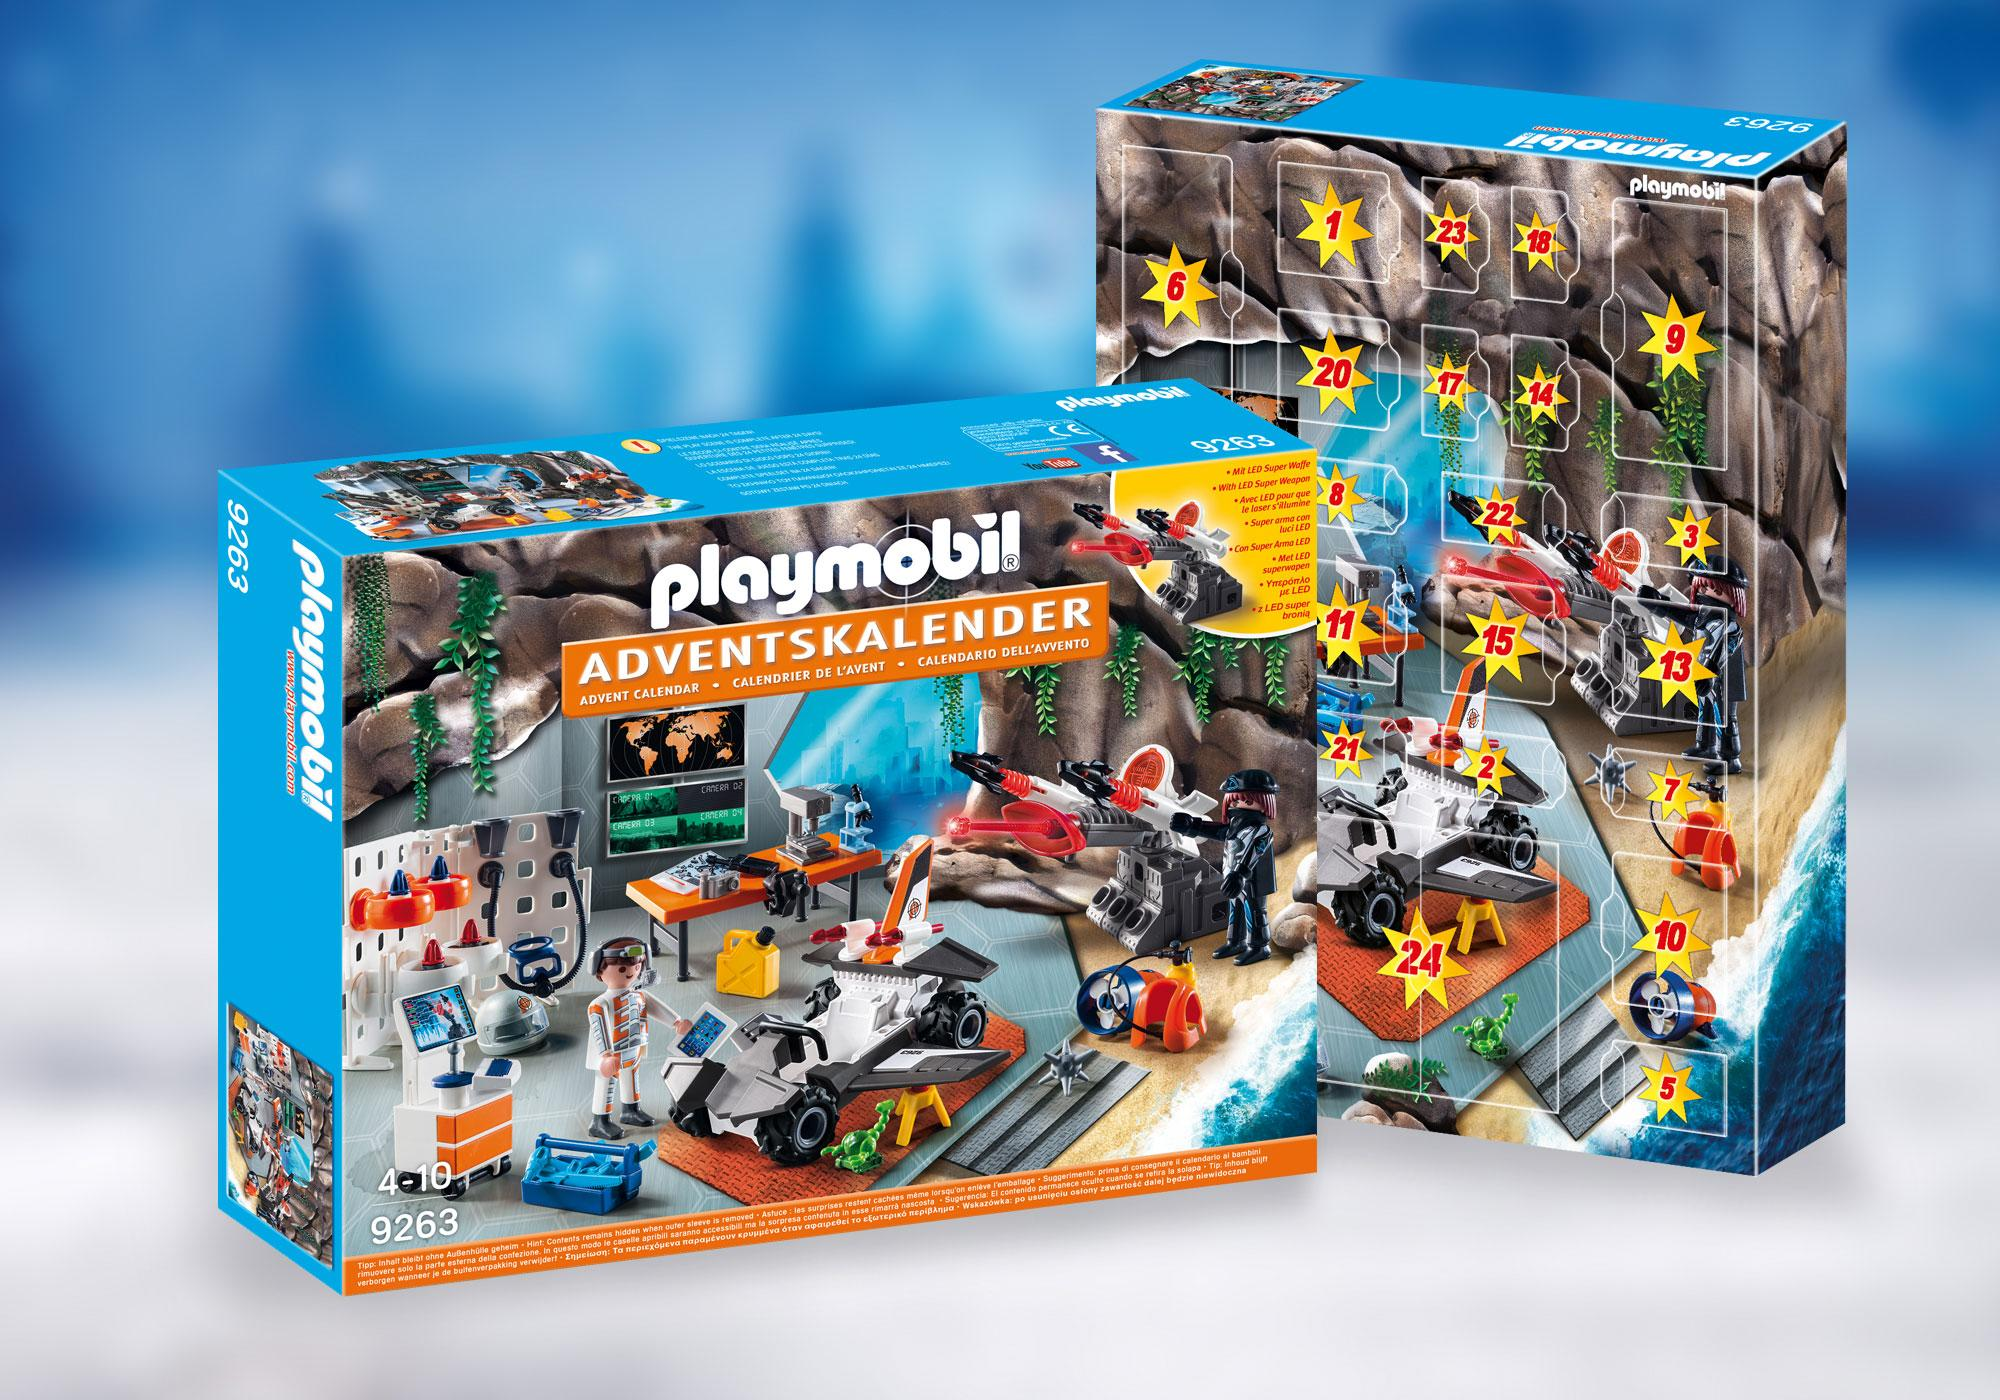 http://media.playmobil.com/i/playmobil/9263_product_detail